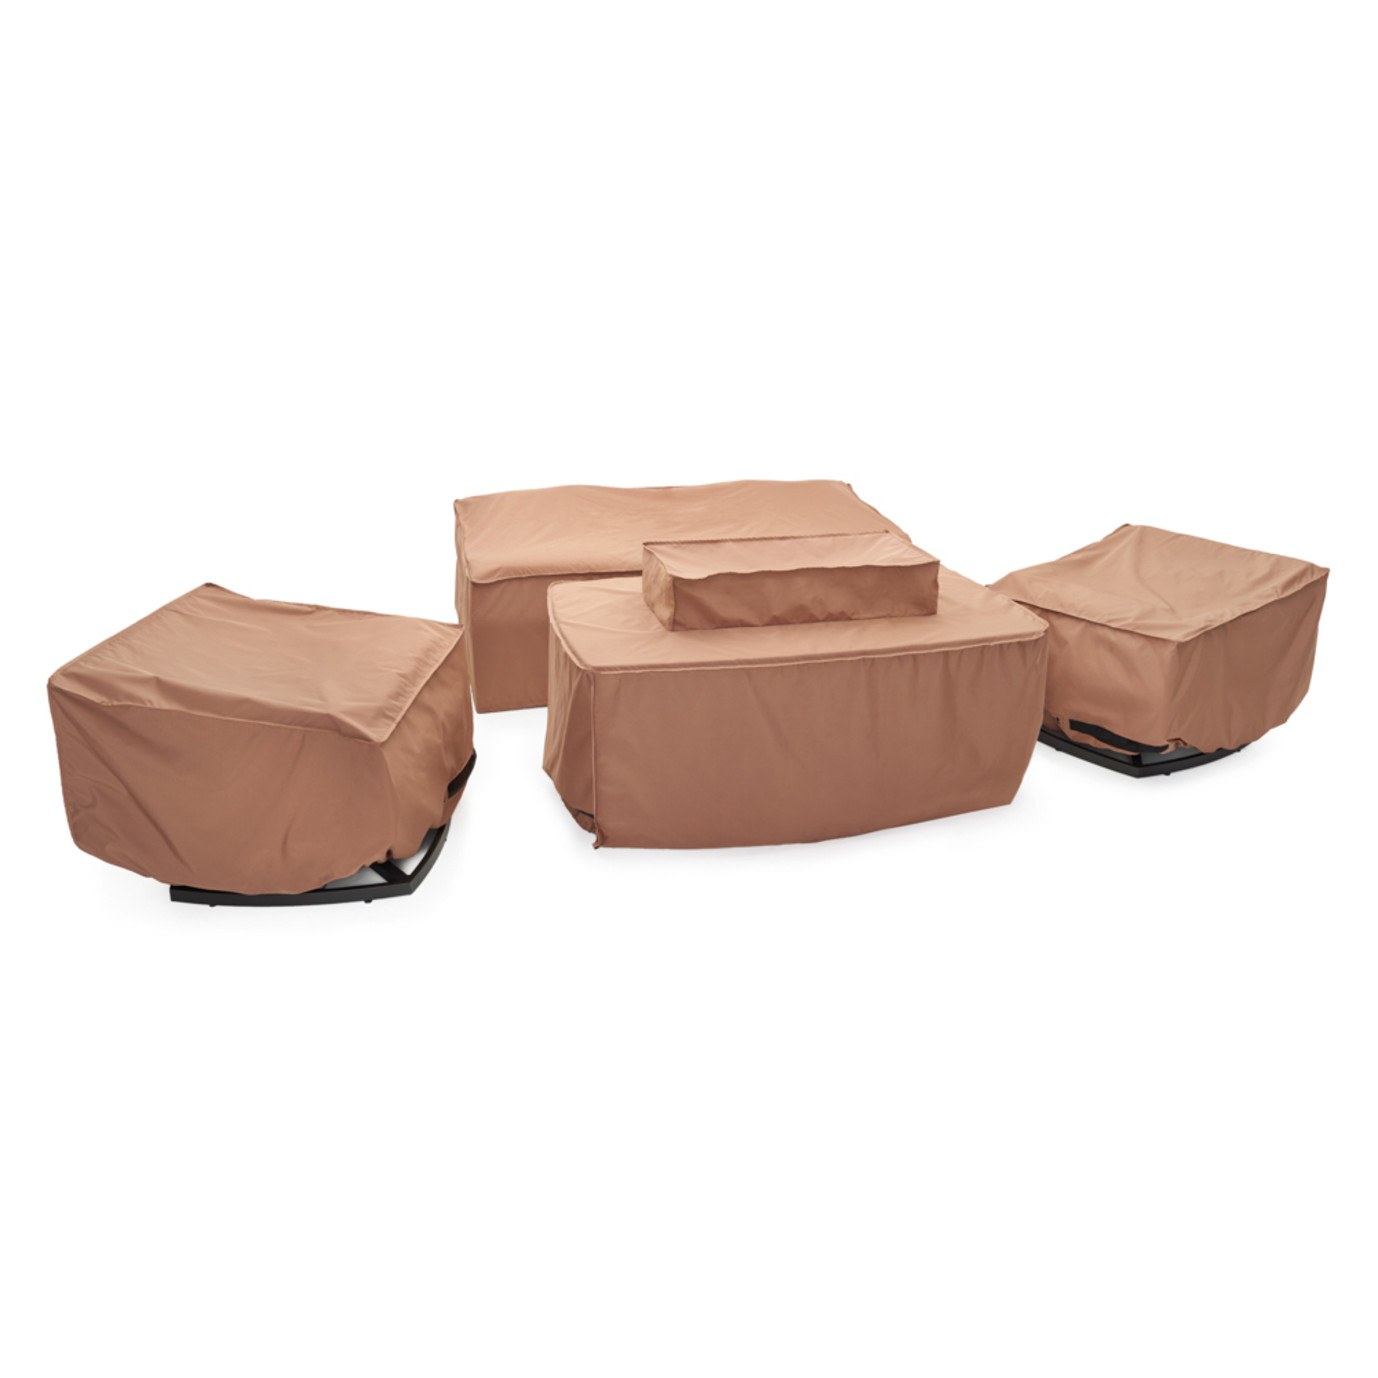 Vistano 4pc Fire Seating Set Furniture Covers